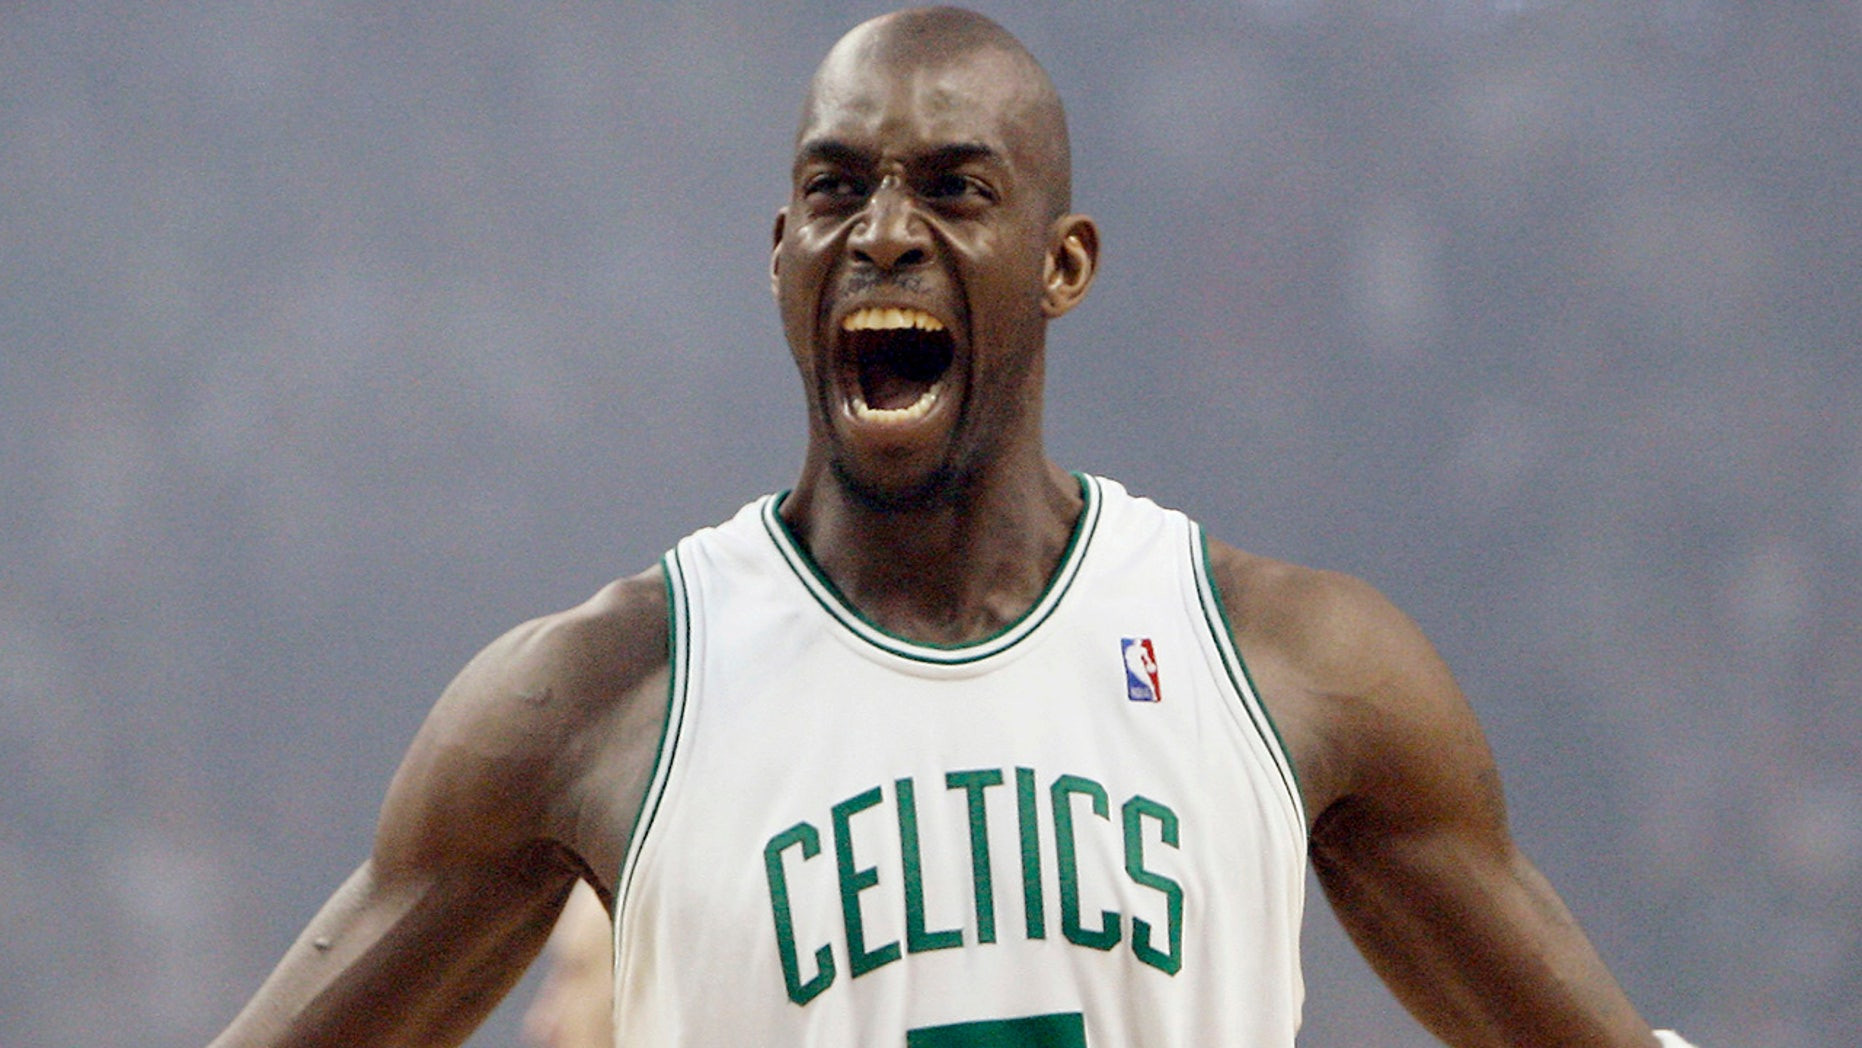 Kevin Garnett, who was traded to the Boston Celtics from the Minnesota Timberwolves in 2007, is suing an accountant for allegedly aiding a wealth manager in stealing $77 million from the NBA star.